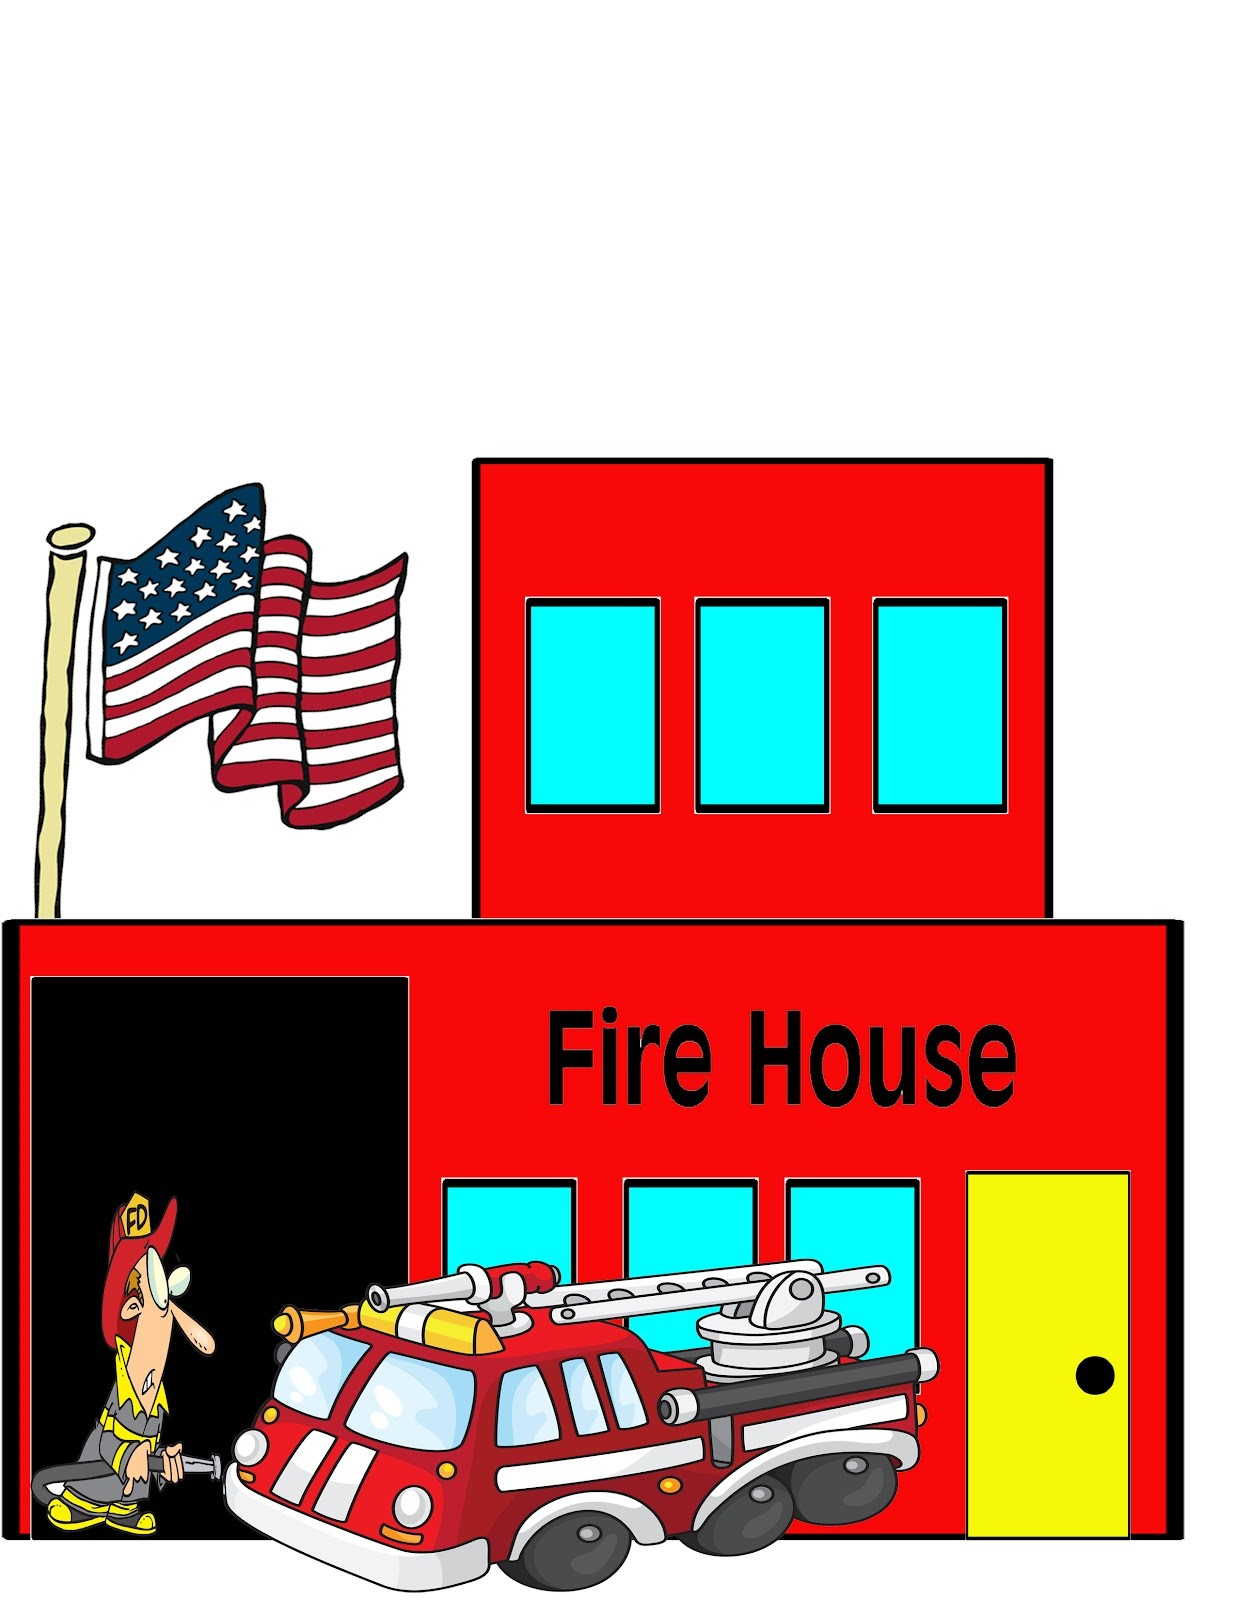 For Clipart Of A House On Fire Pictures Firehouse RcdK5XM9i.